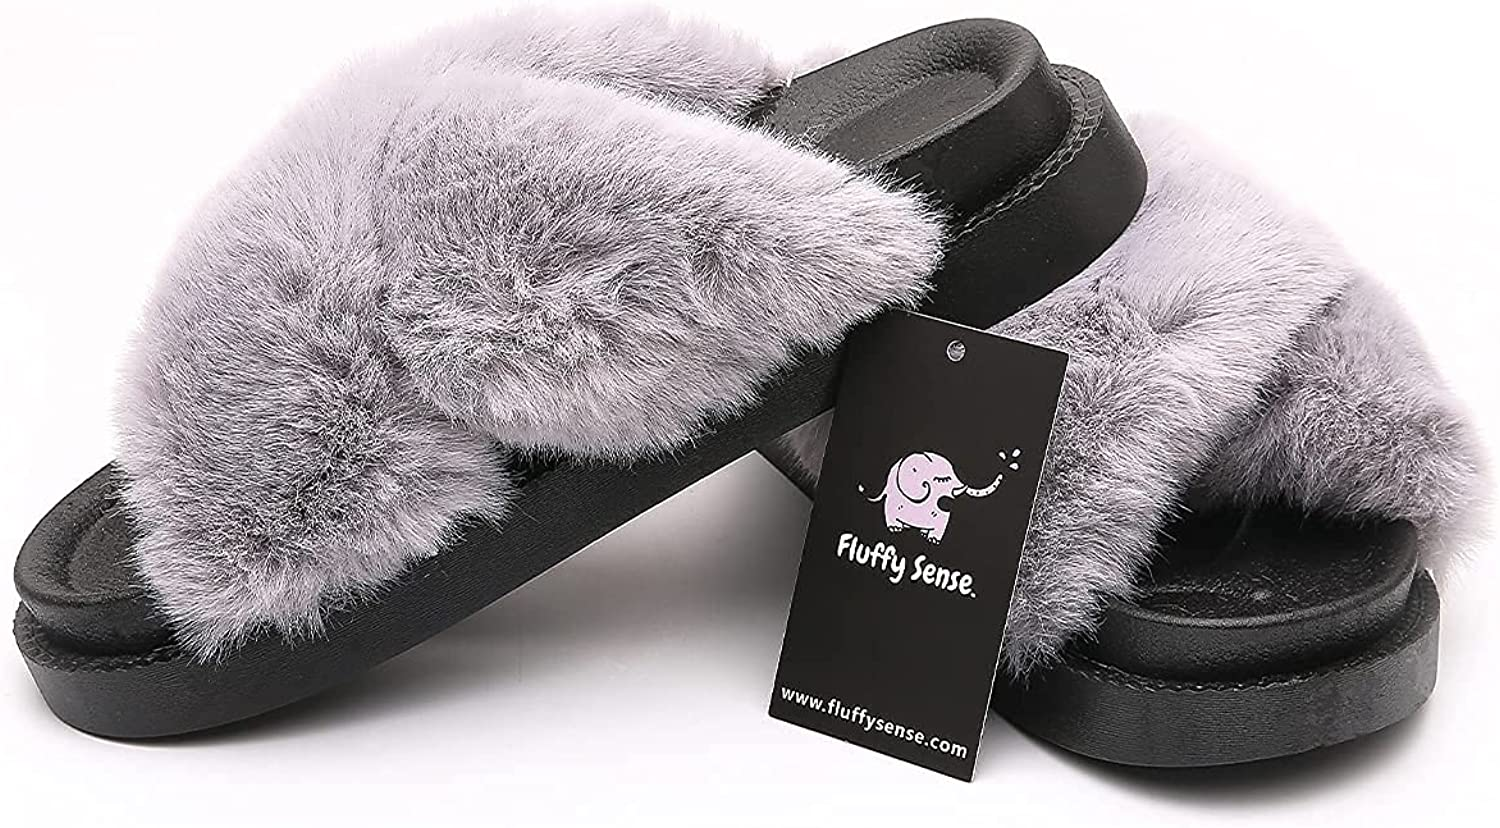 FLUFFY SENSE. Women's Fluffy Slides Cross Band Fuzzy Slippers For Women Soft Plush Open Toe with Arch Support Gift For Her Cute Comfort Indoor/Outdoor